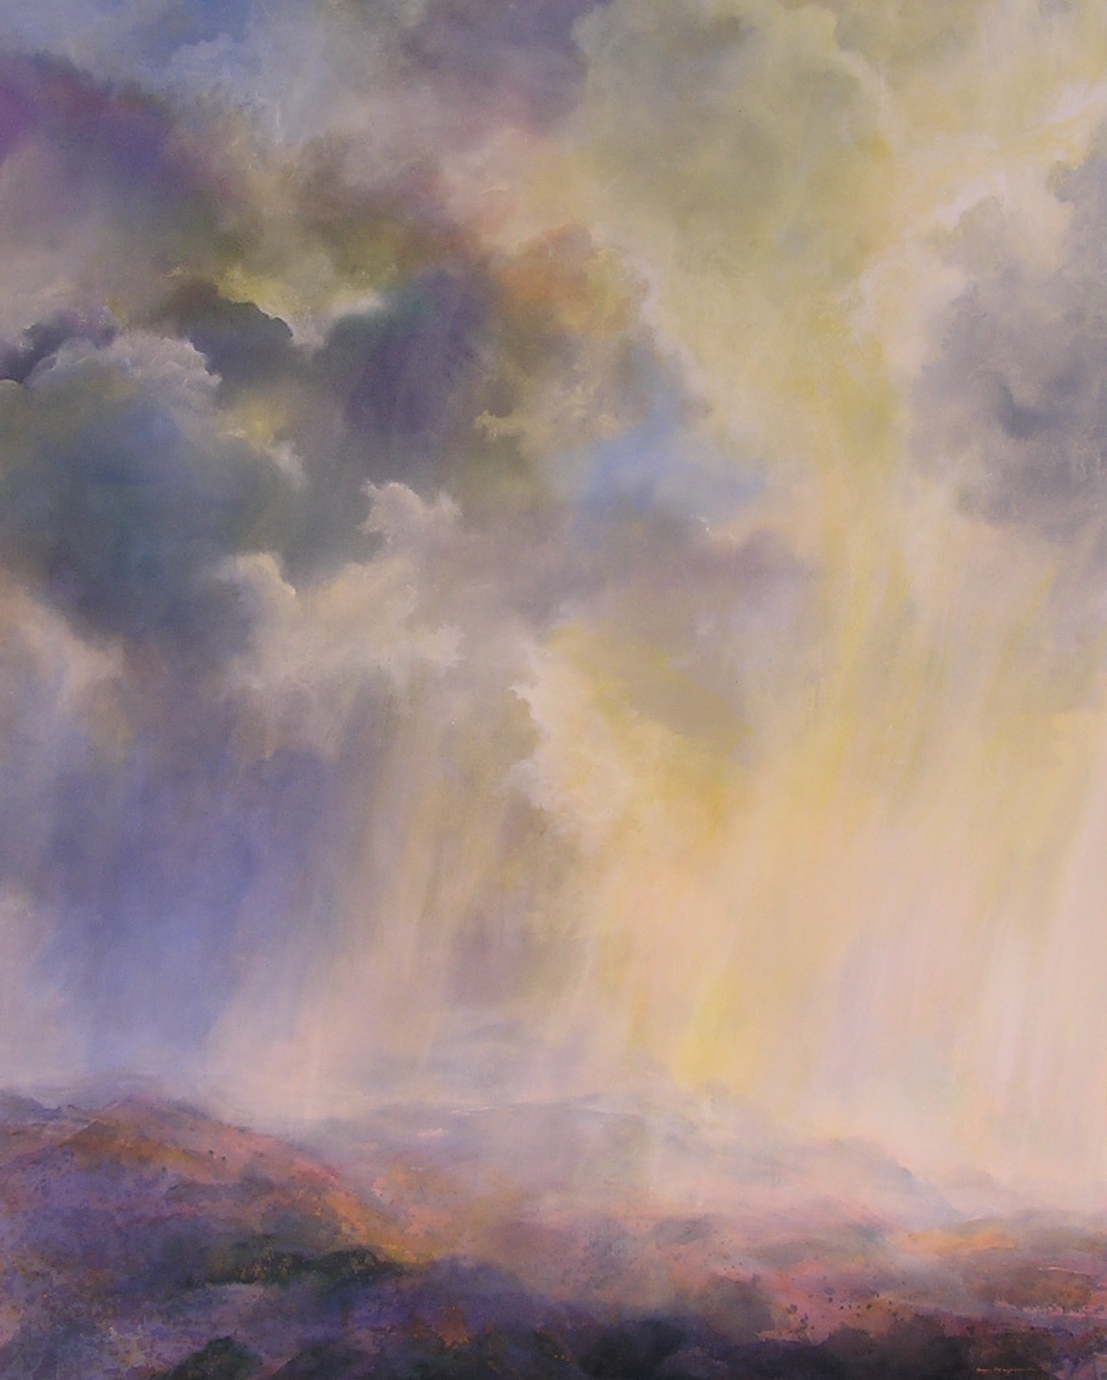 EARLY STORM, Macpherson